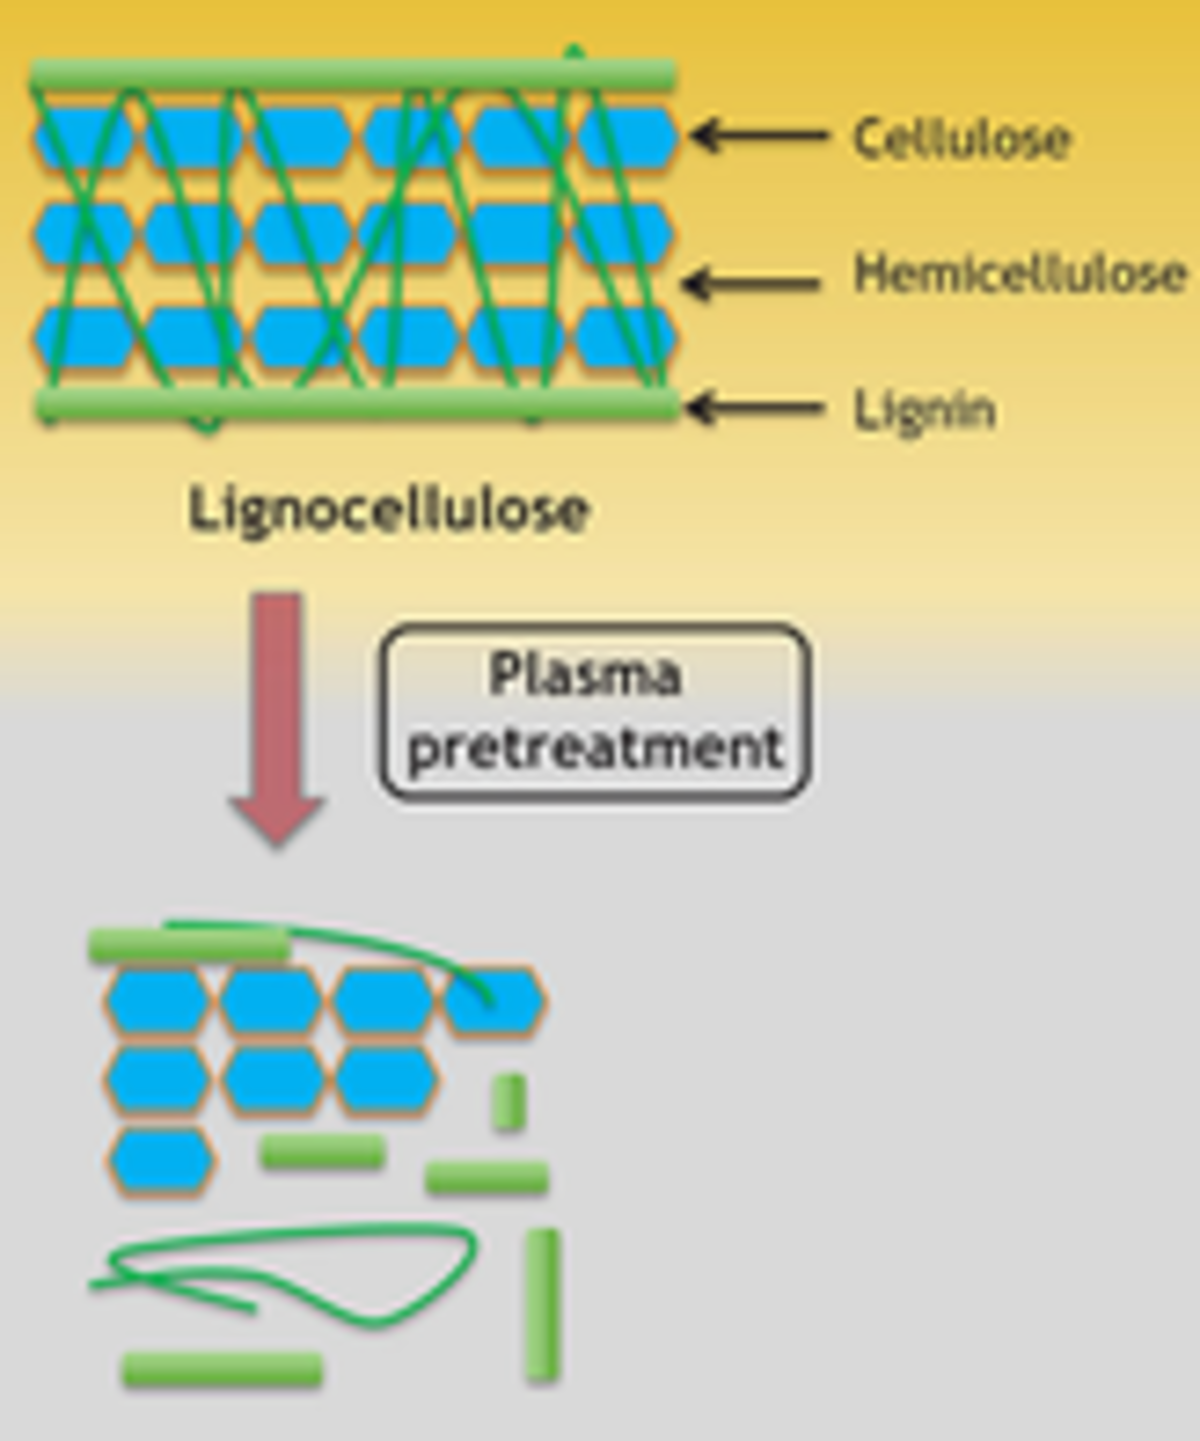 Unconventional Pretreatment of Lignocellulose with Low‐Temperature Plasma